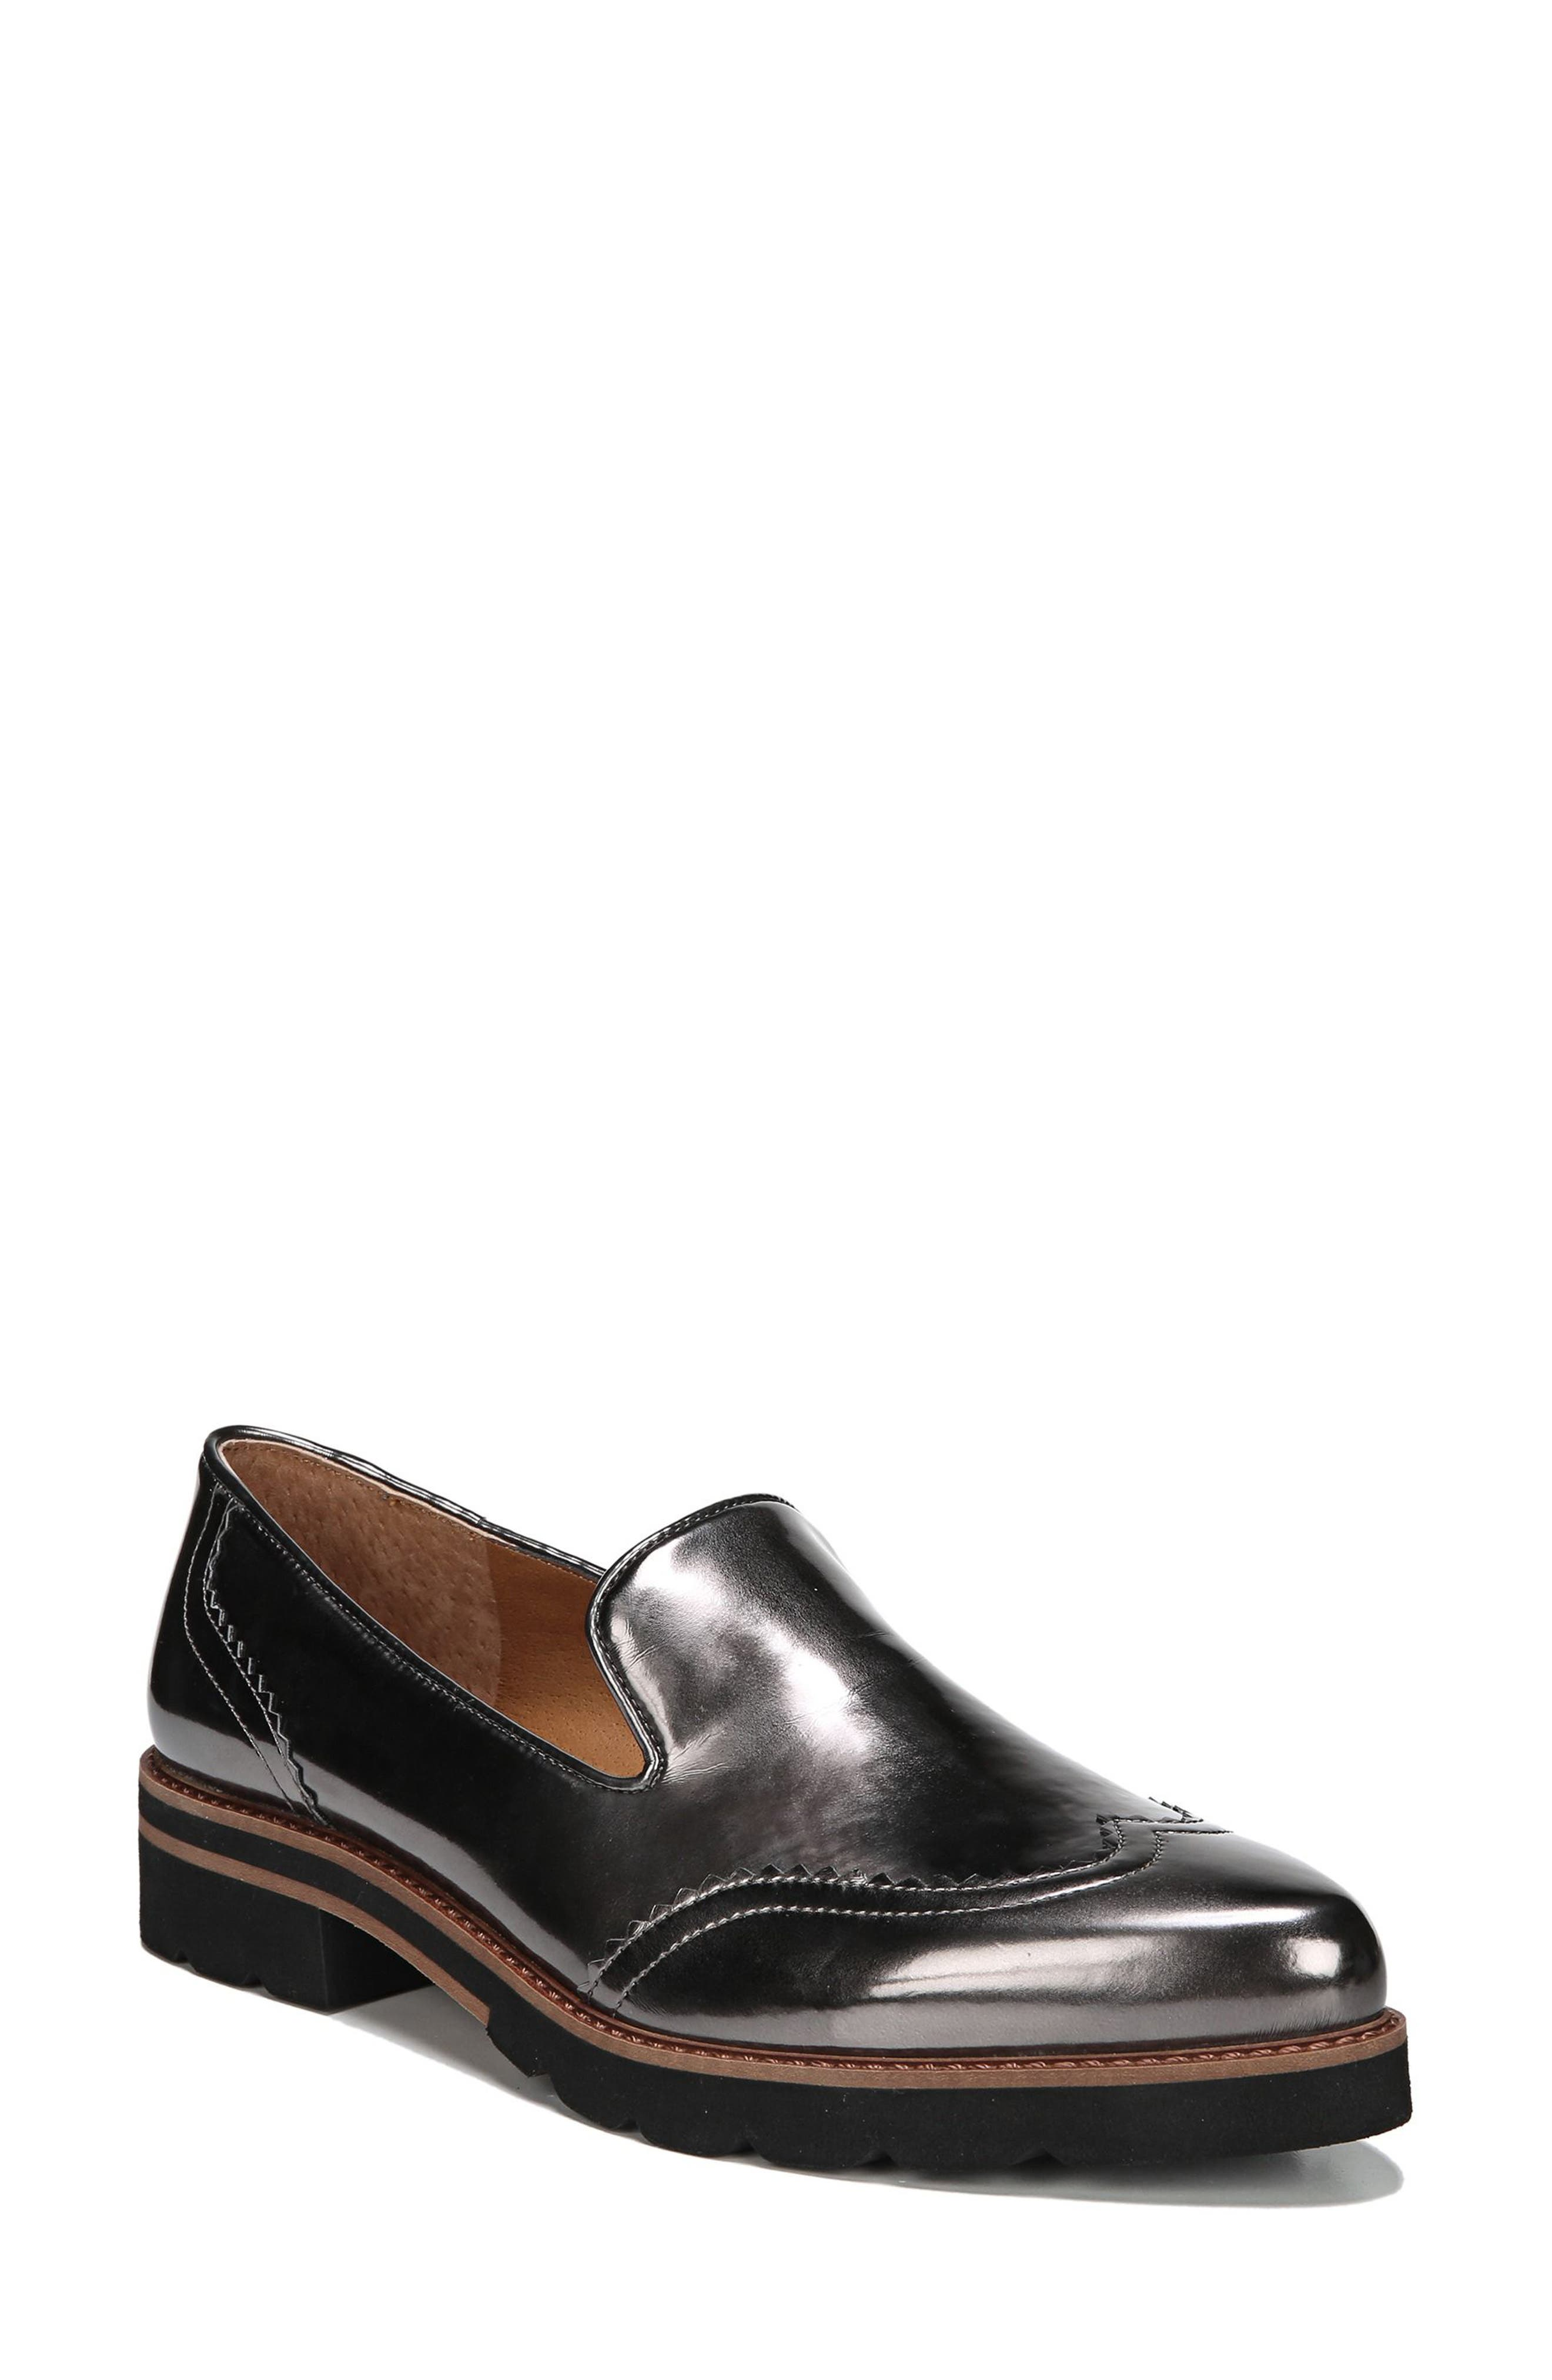 Betsy Loafer,                         Main,                         color, GUNMETAL FAUX PATENT SUEDE